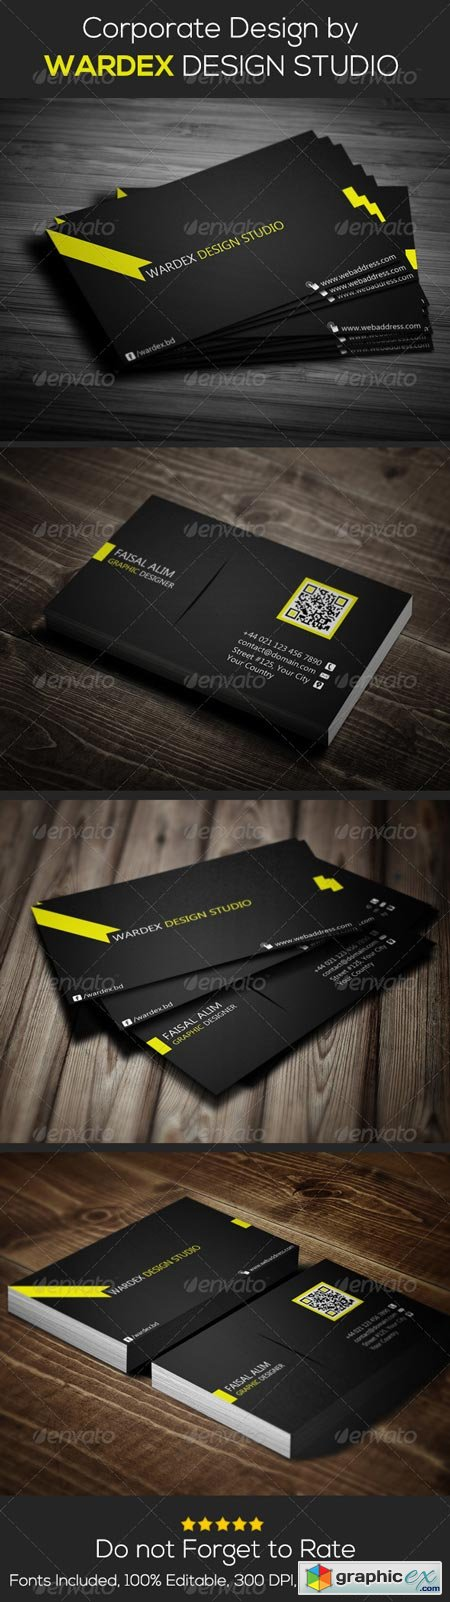 Corporate & Pro Business Card Dersign 6680901